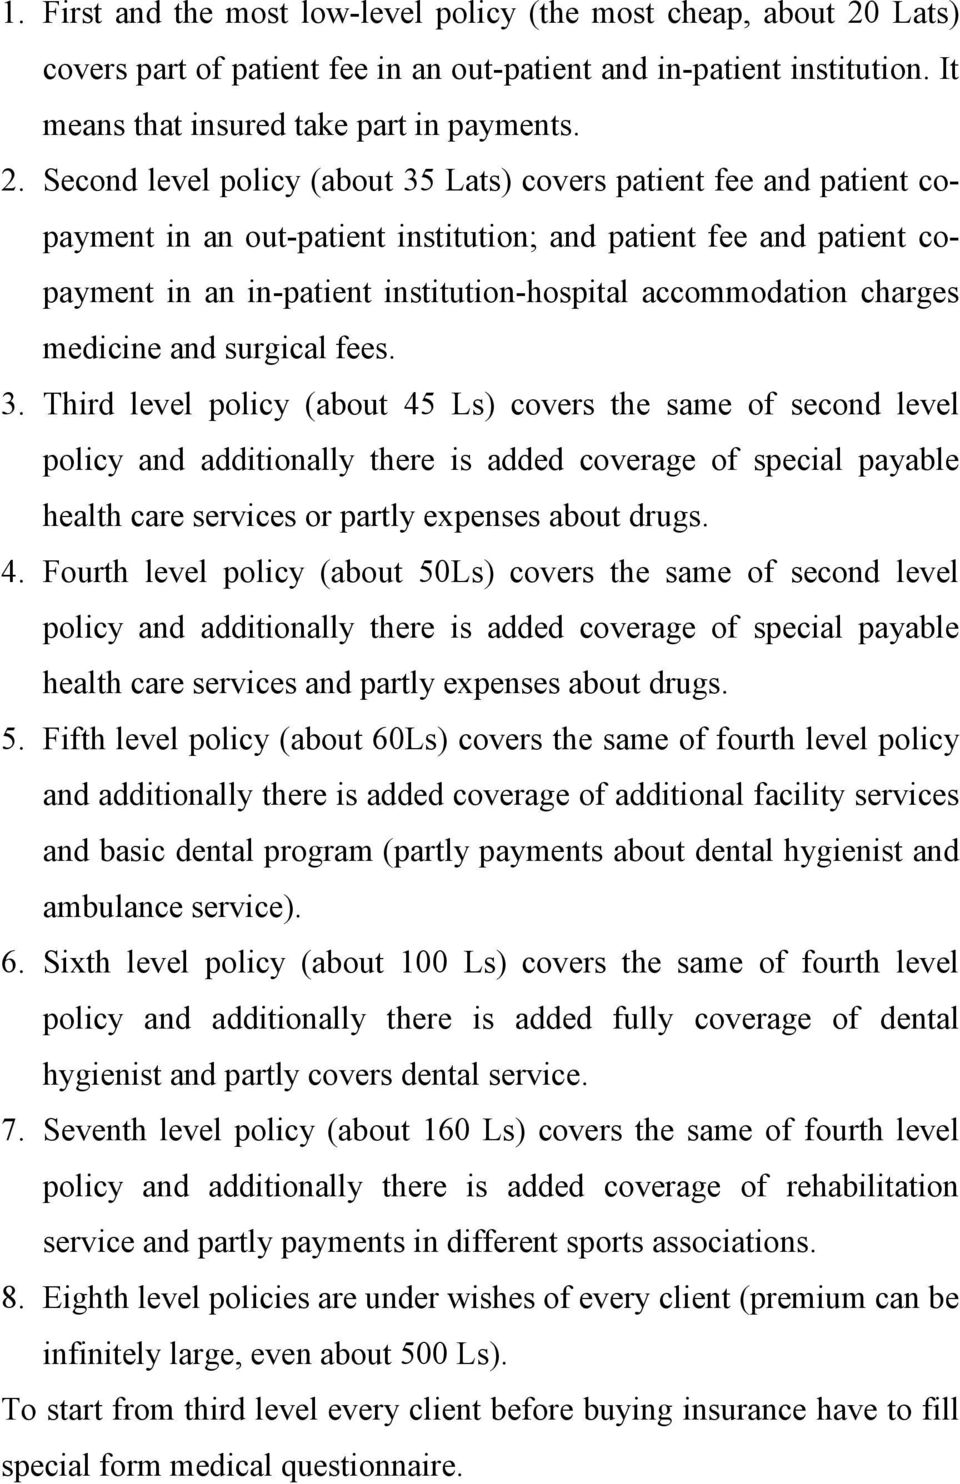 Second level policy (about 35 Lats) covers patient fee and patient copayment in an out-patient institution; and patient fee and patient copayment in an in-patient institution-hospital accommodation